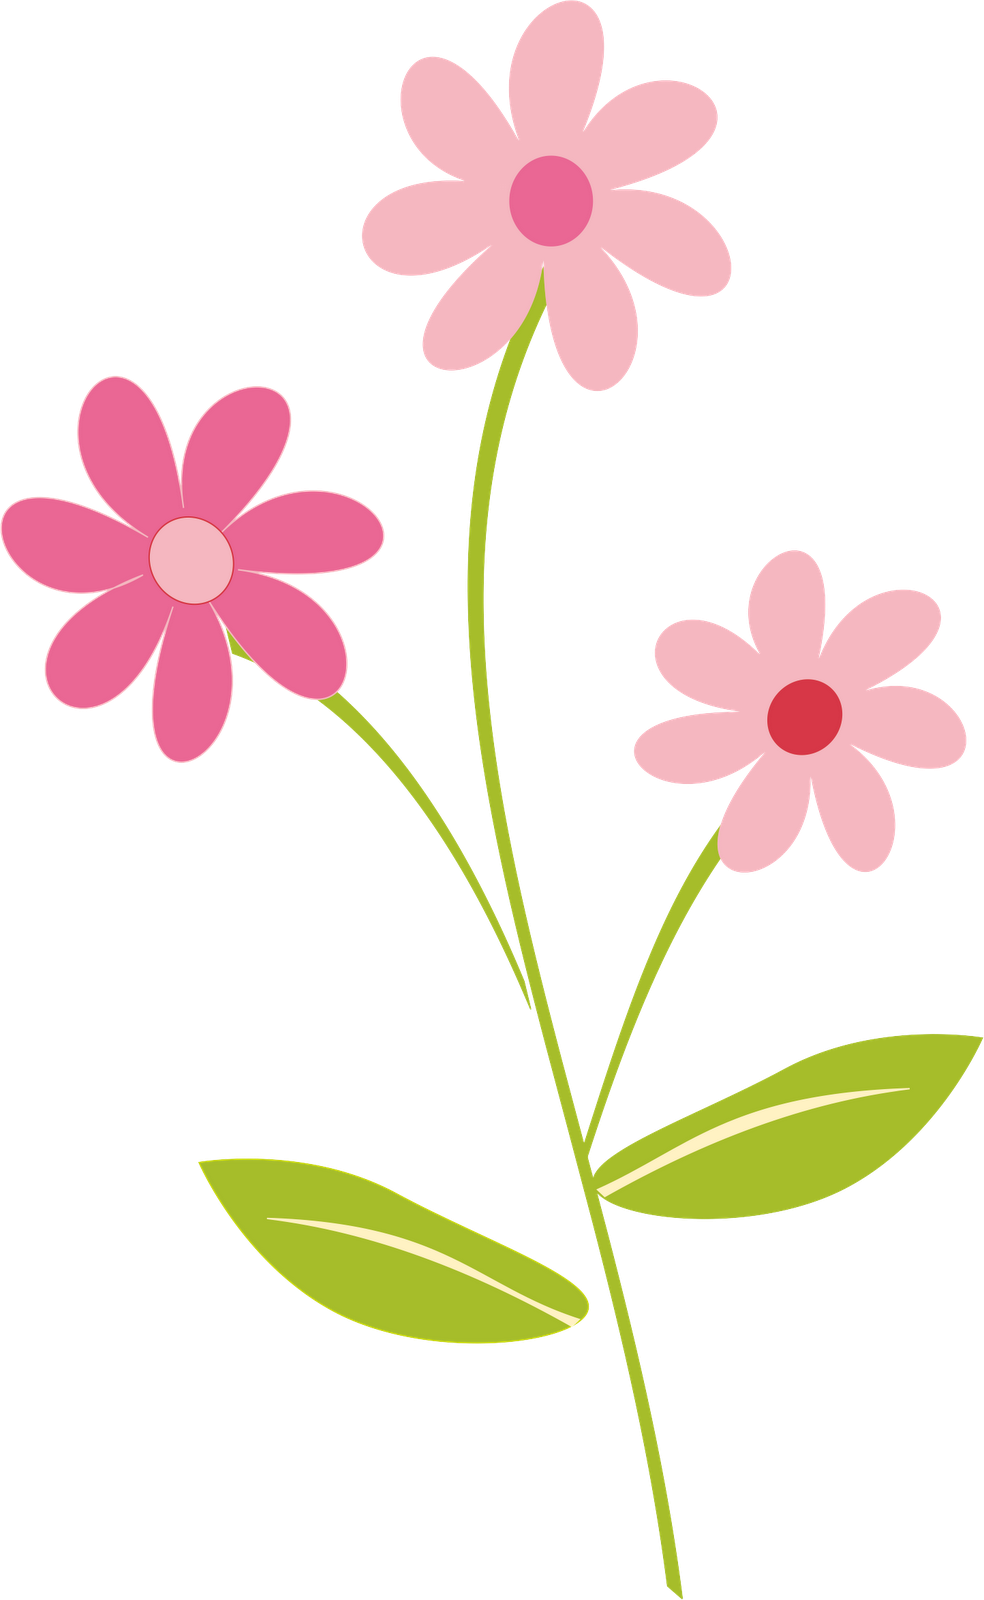 Flowers pictures transparentpng. Border clipart png clip art royalty free stock